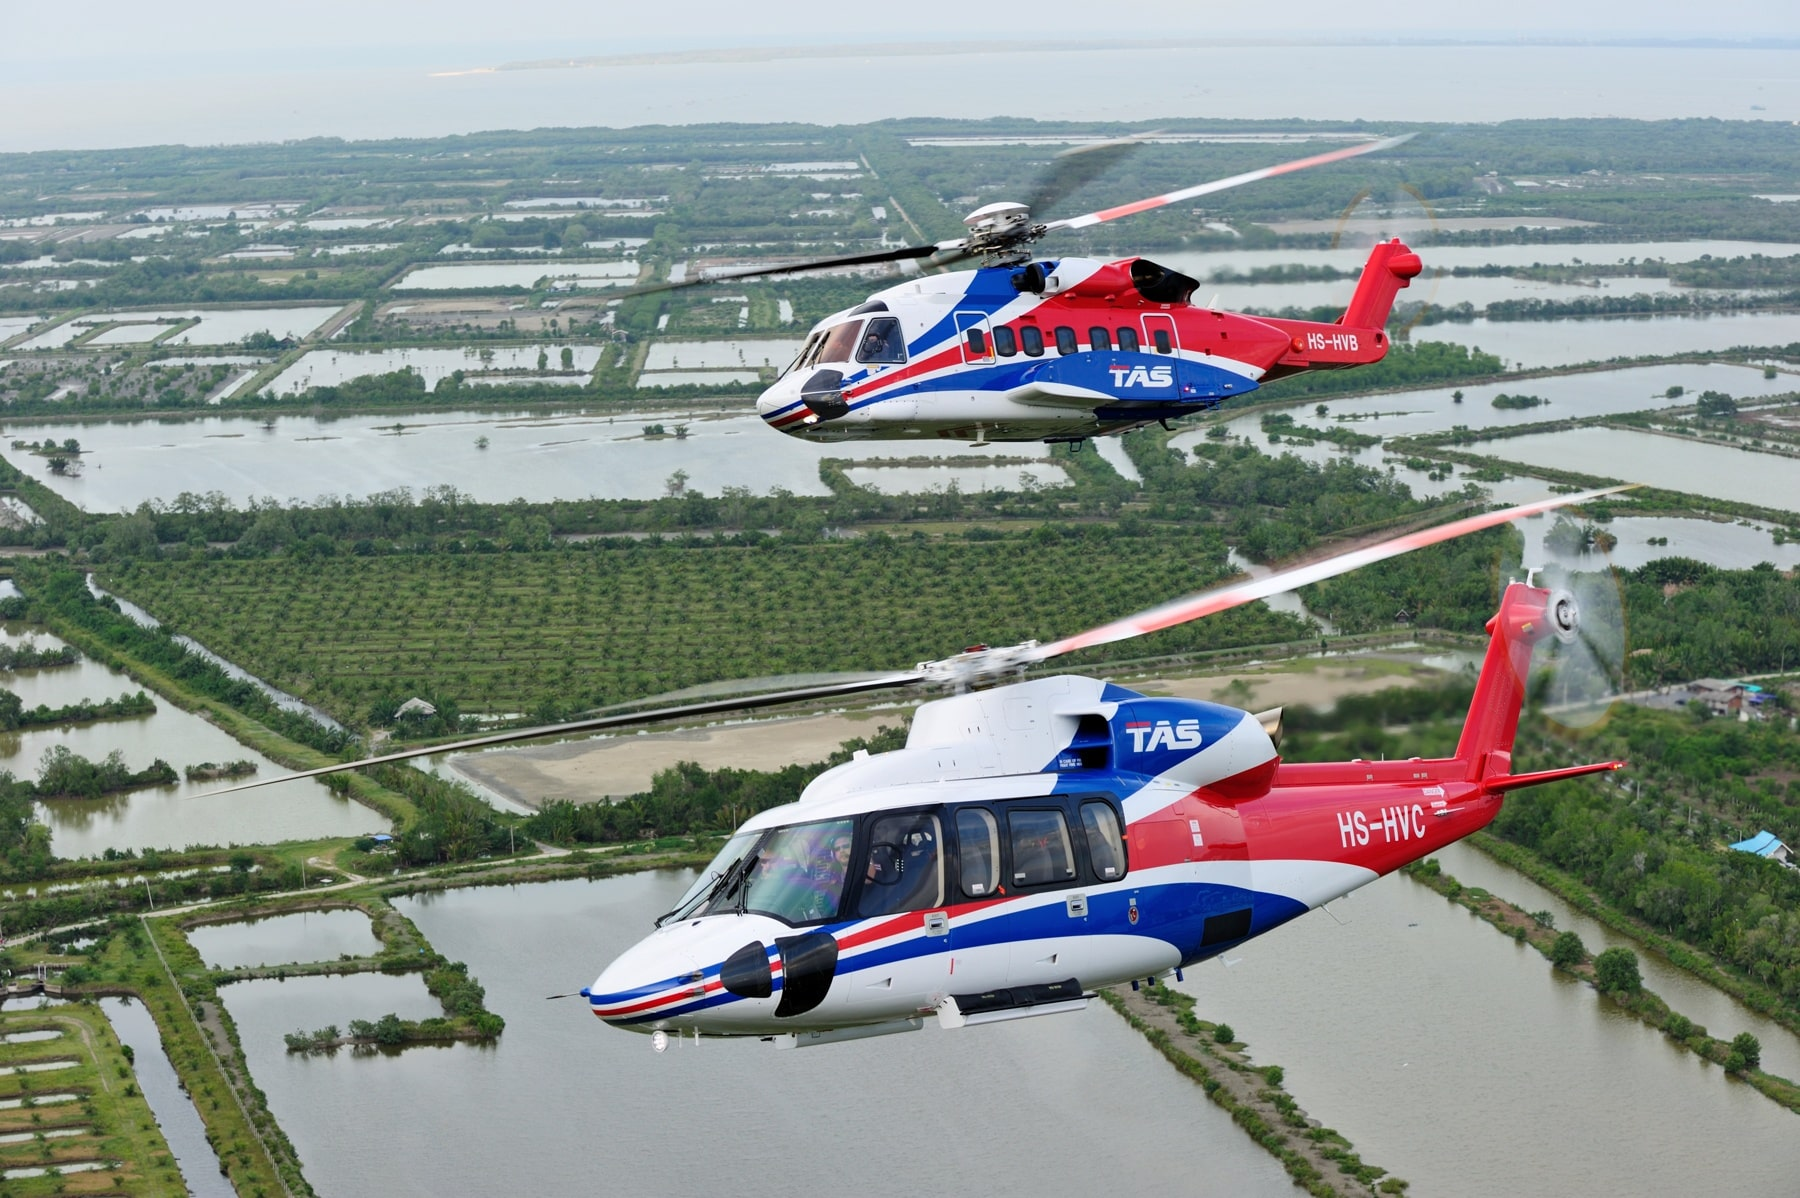 Thai Aviation Services - Sikorsky S-76D and S-92 - image by Rawee Payomyol